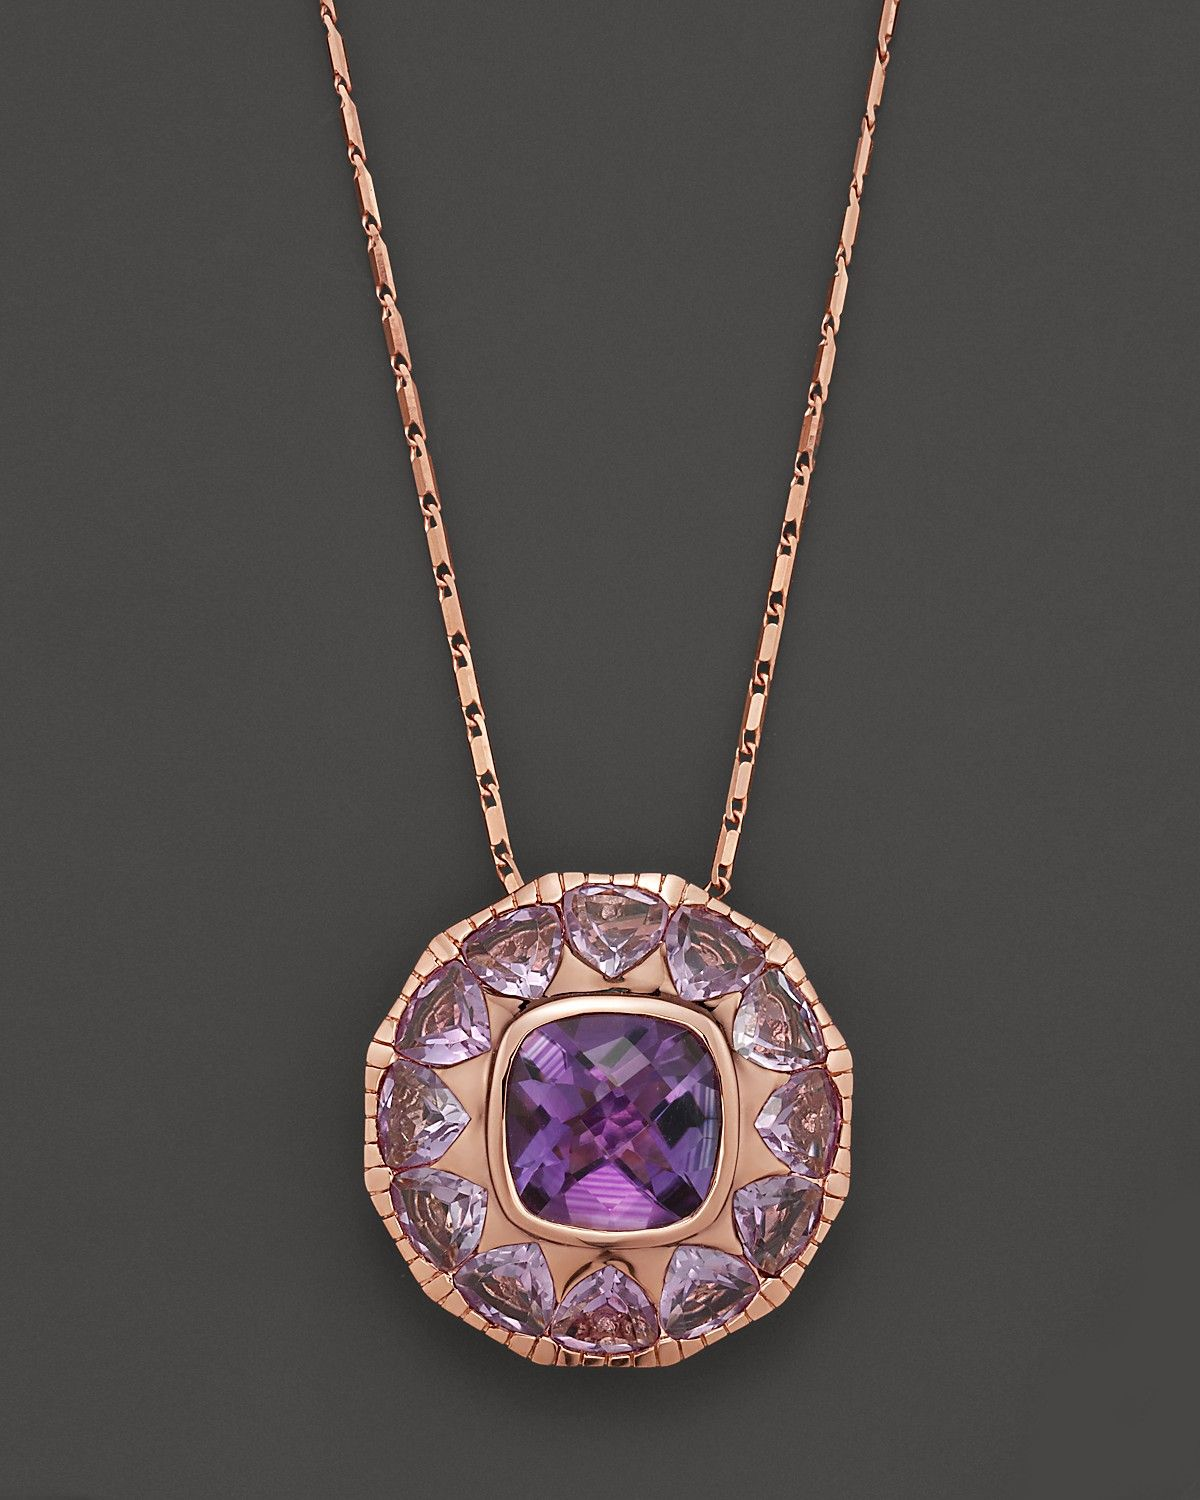 Amethyst And Pink Amethyst Pendant Necklace In 14k Rose Gold 18 Jewelry Accessories Fine Jewelry Necklaces Bloomingdale S Amethyst Necklace Pendant Amethyst Pendant Pink Amethyst